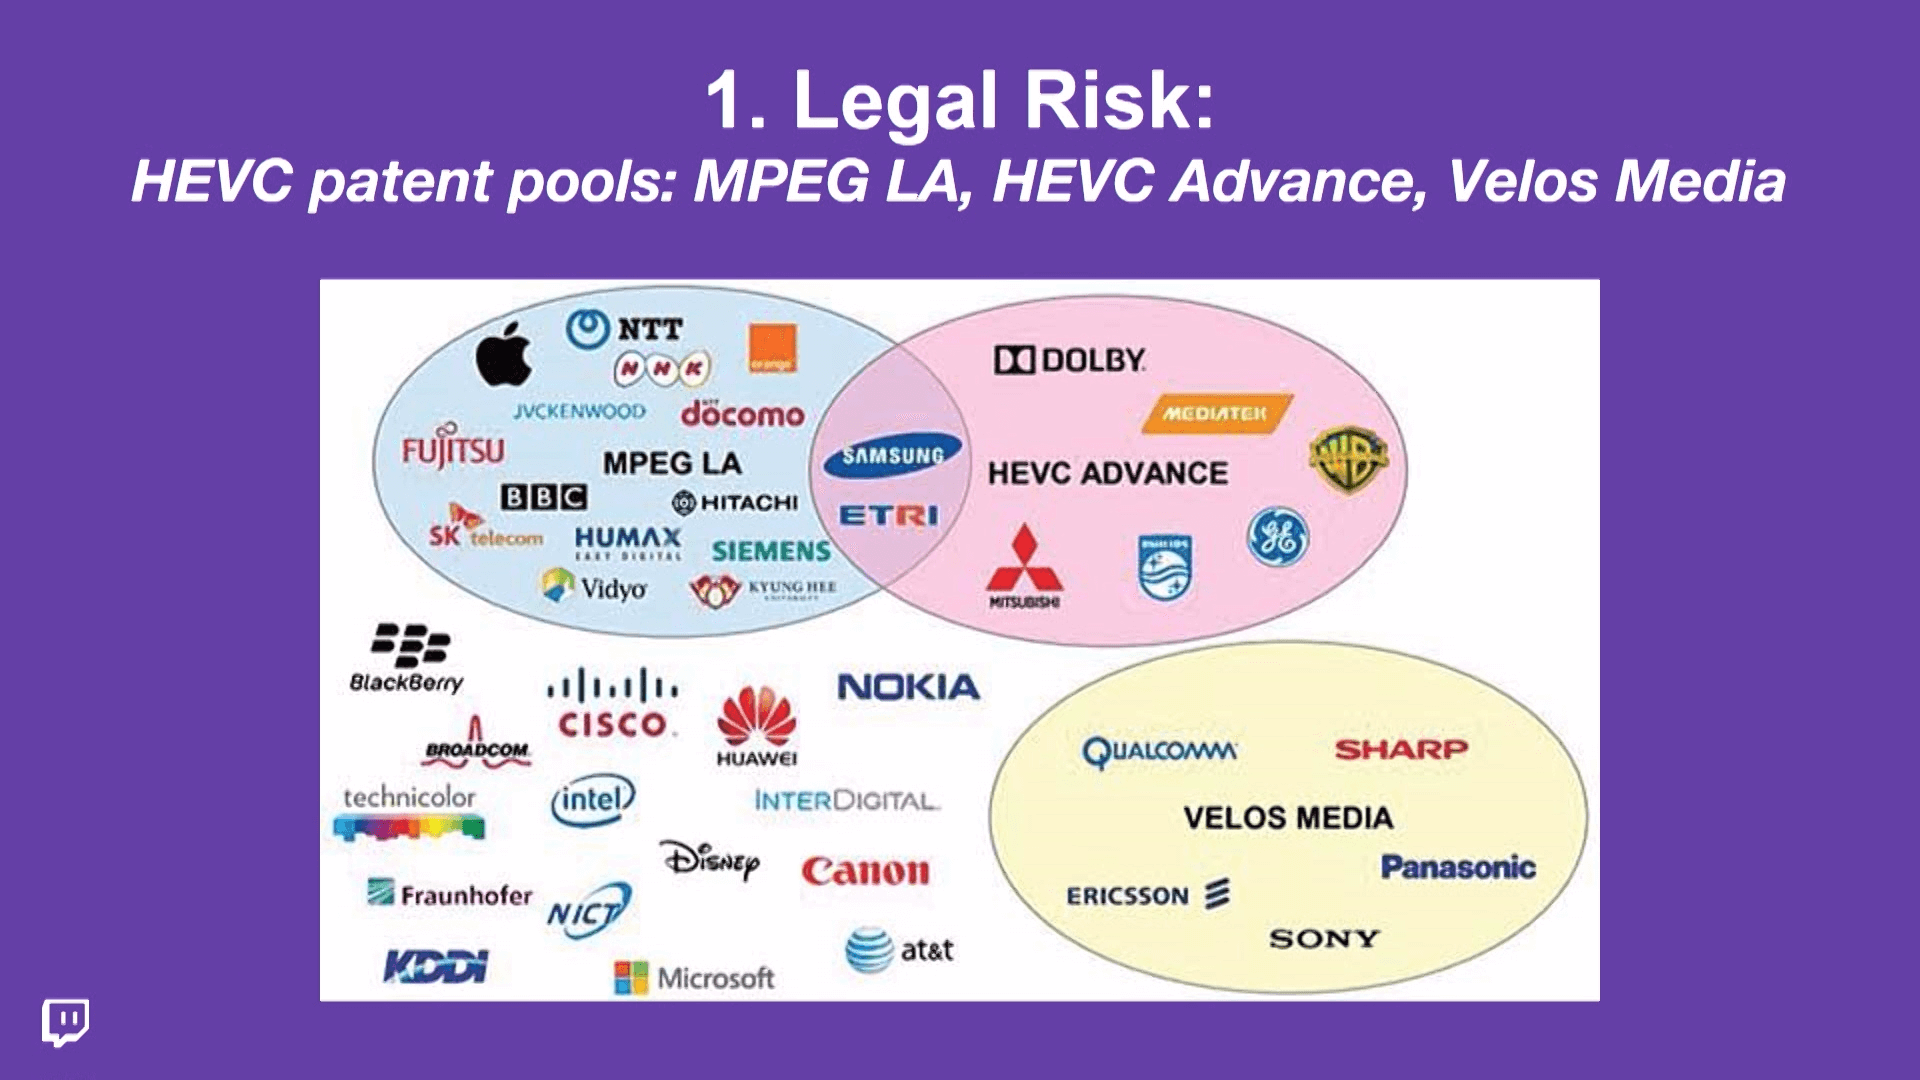 Legal risks of HEVC adoption